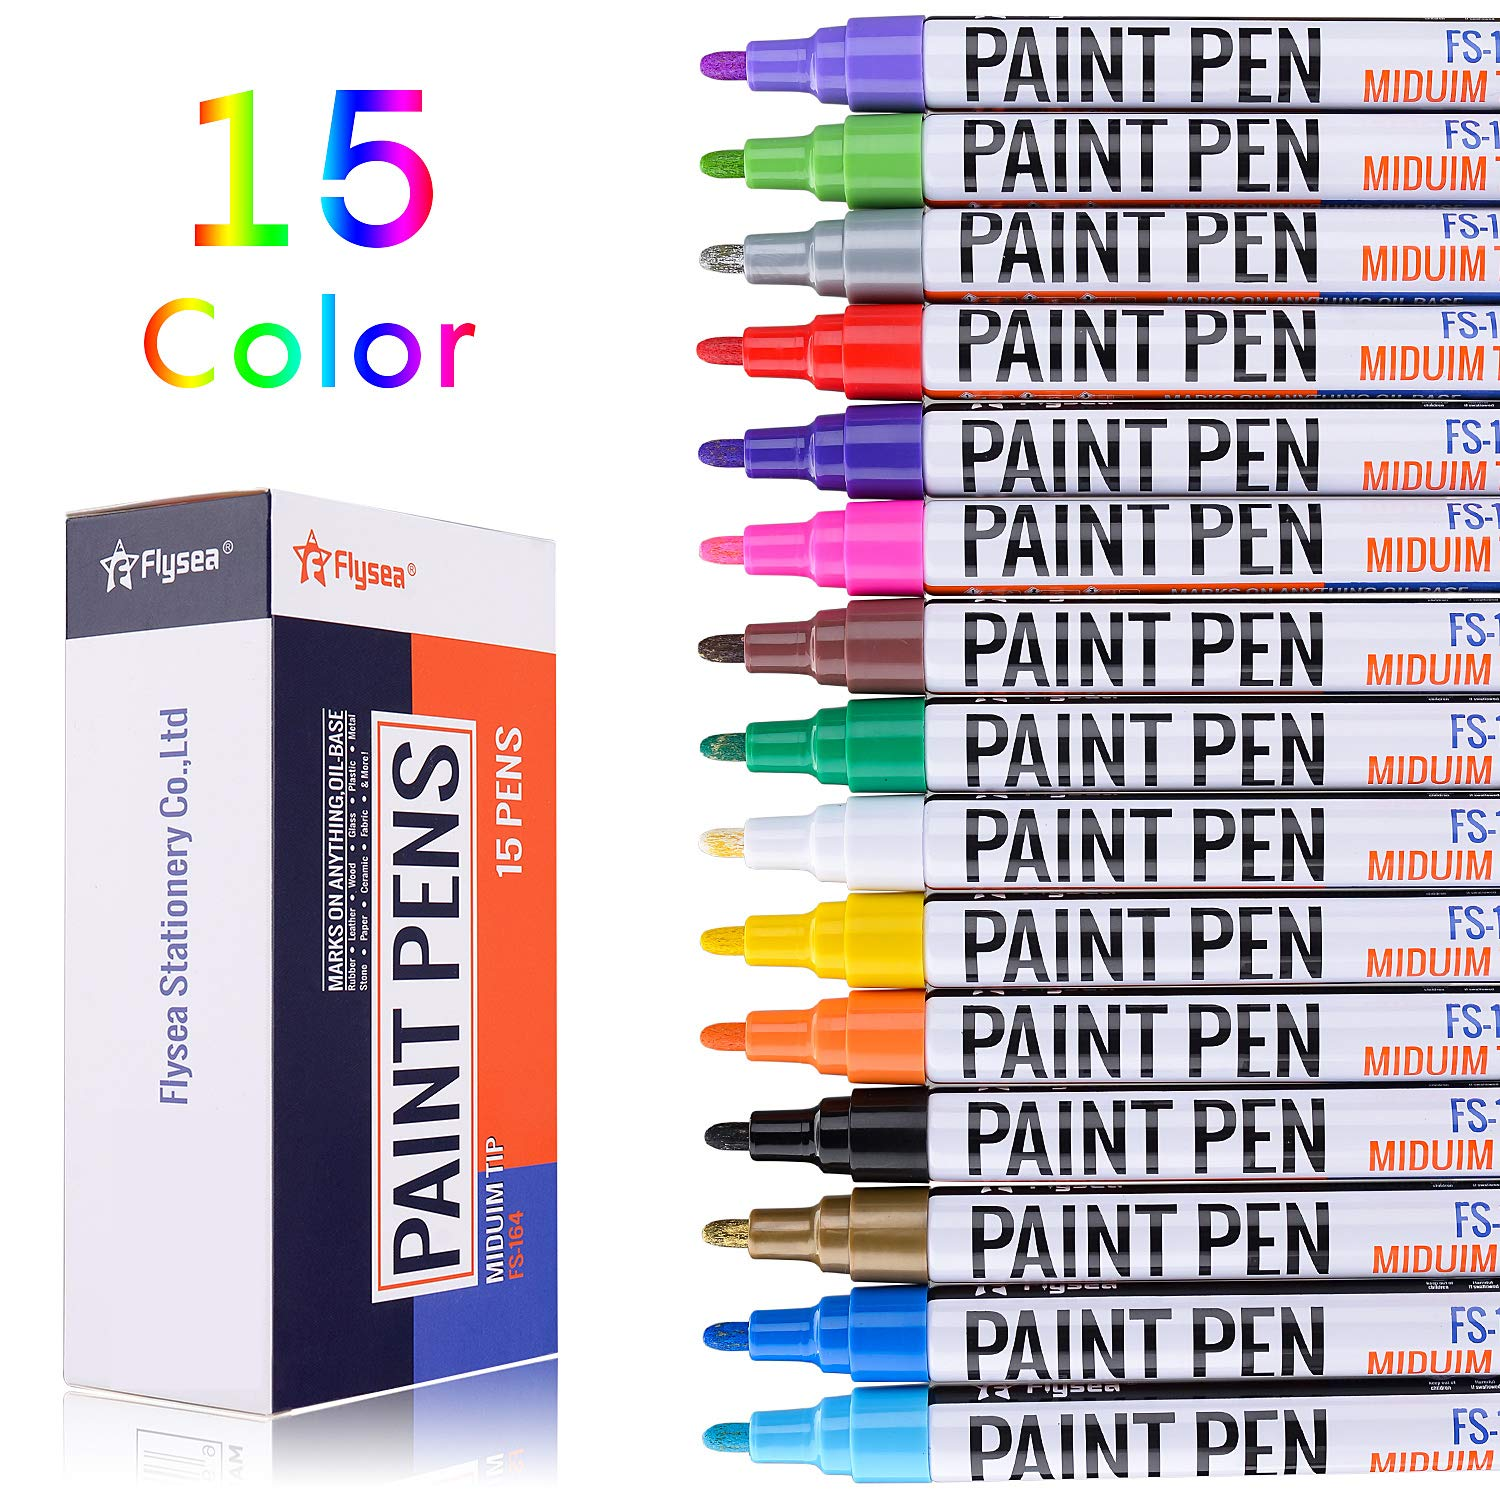 Acrylic Paint pens, EKKONG Permanent Paint Markers for Rock, Wood, Metal, Plastic, Glass, Canvas, Ceramic & More! Medium Tip with Quick Dry, Water Resistant Ink(15 Pack) by EKKONG